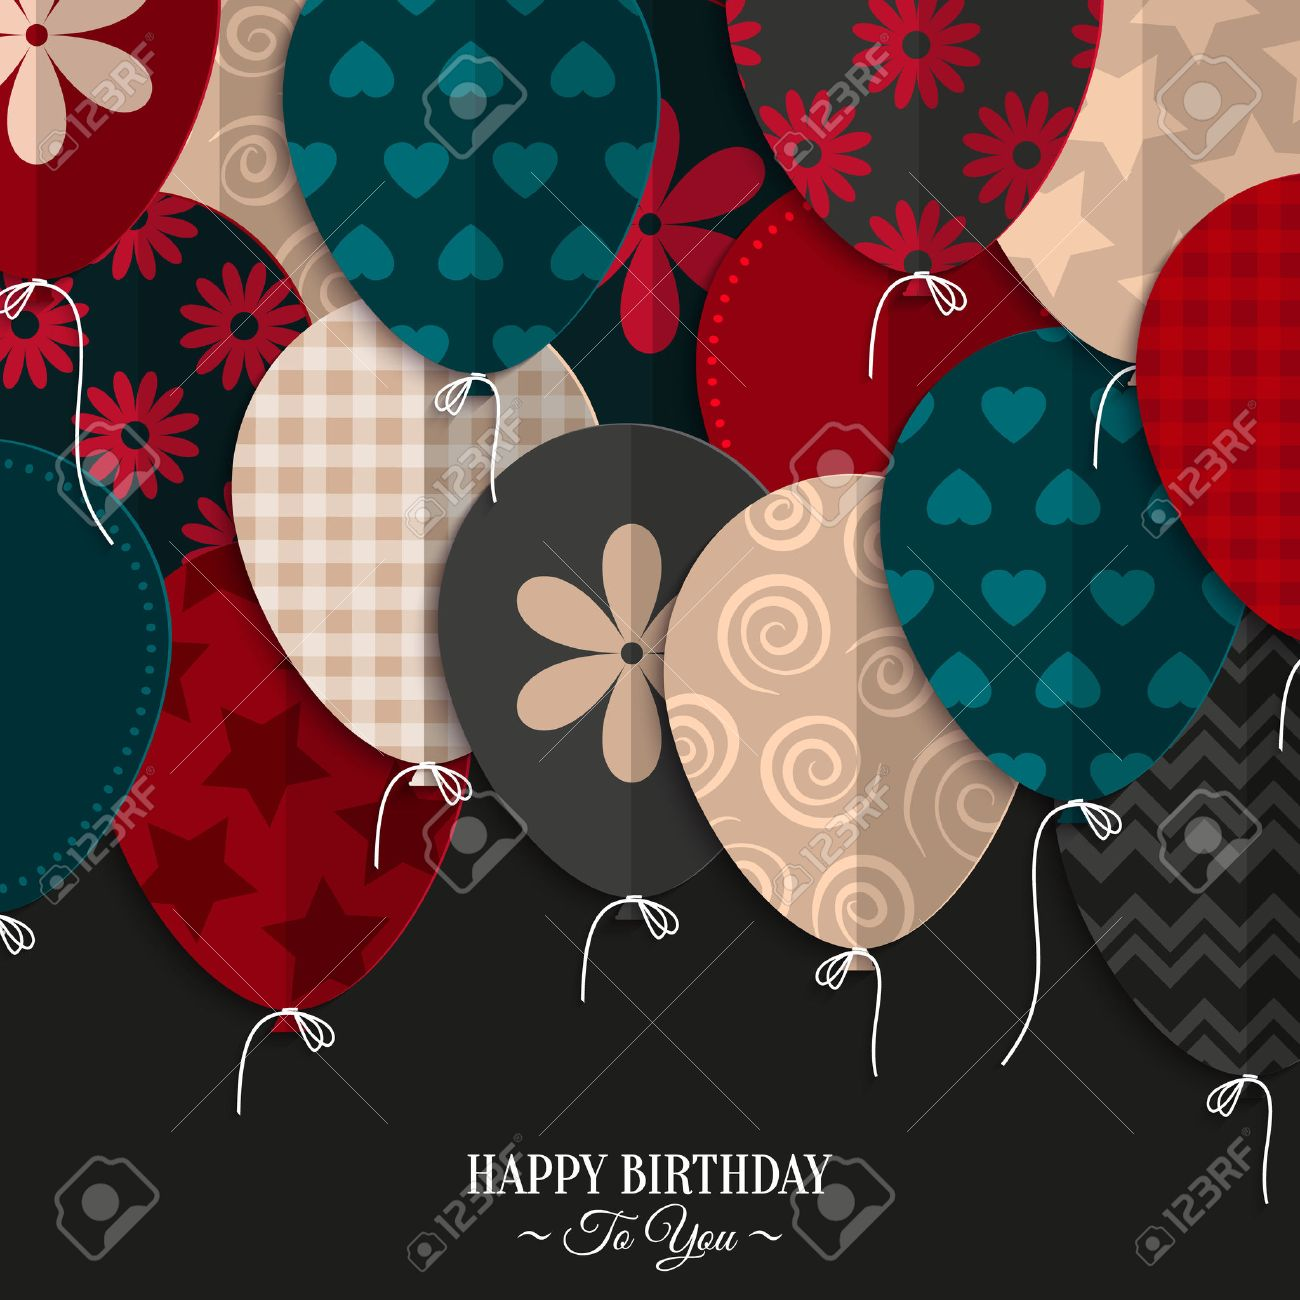 Vector birthday card with paper balloons and birthday text. - 35589919